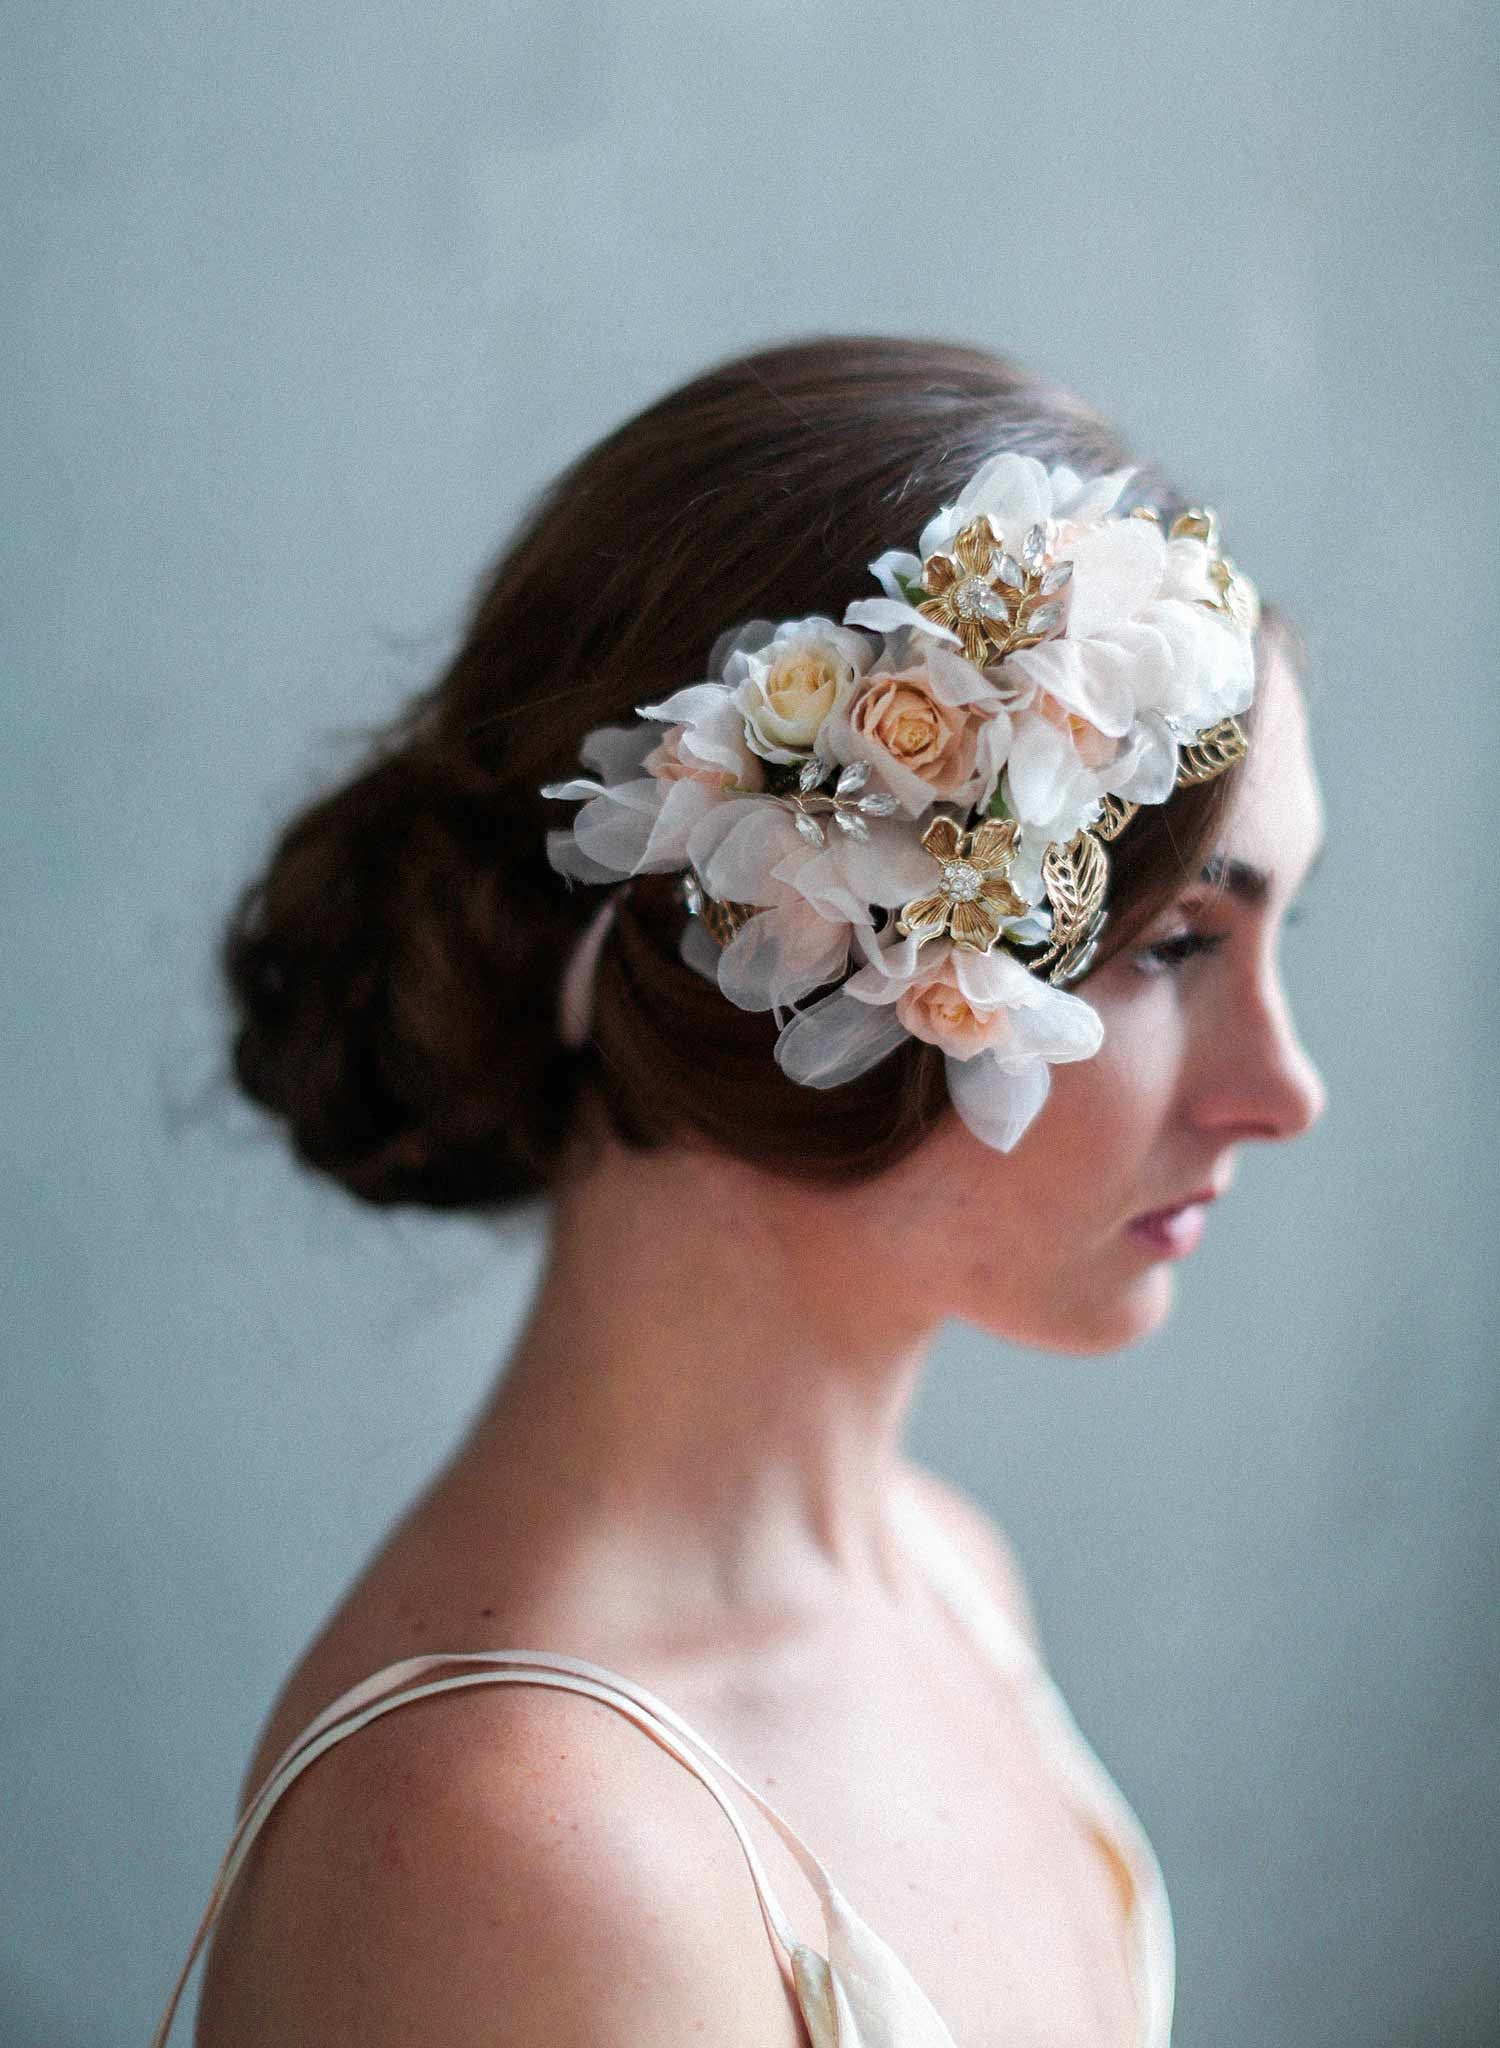 Silk flowers handmade silk flowers bridal hair flowers twigs blush and gold bouquet headpiece style 722 mightylinksfo